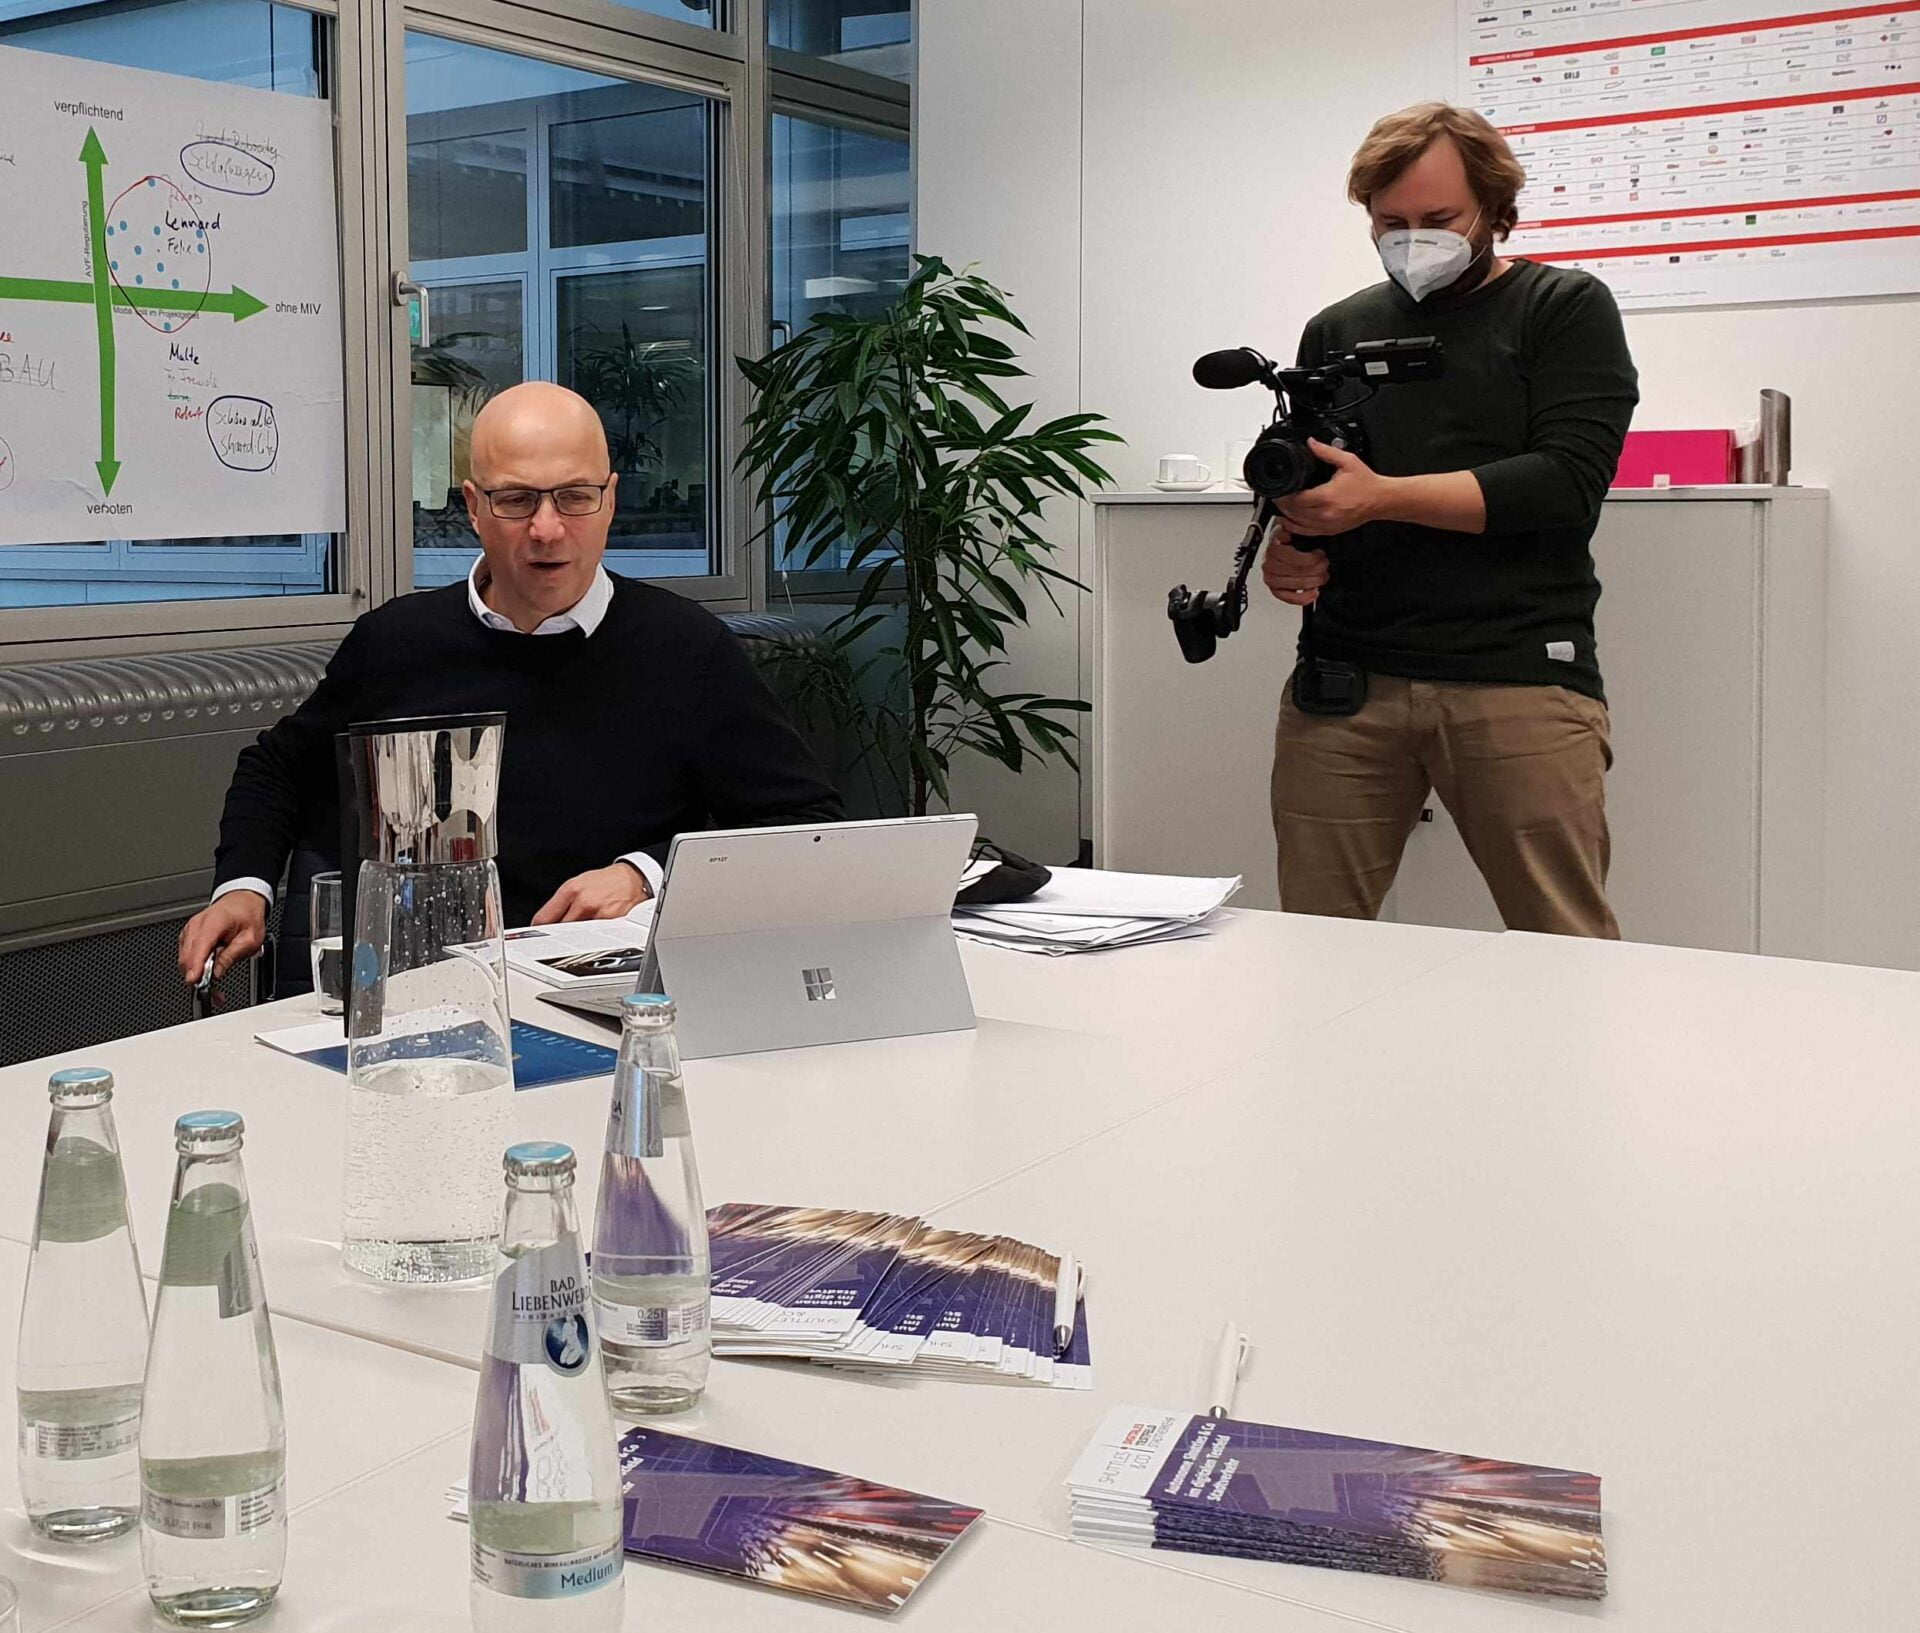 Joerg Welke about our Coordination and consultation meeting during the image film recording with cameraman in the background